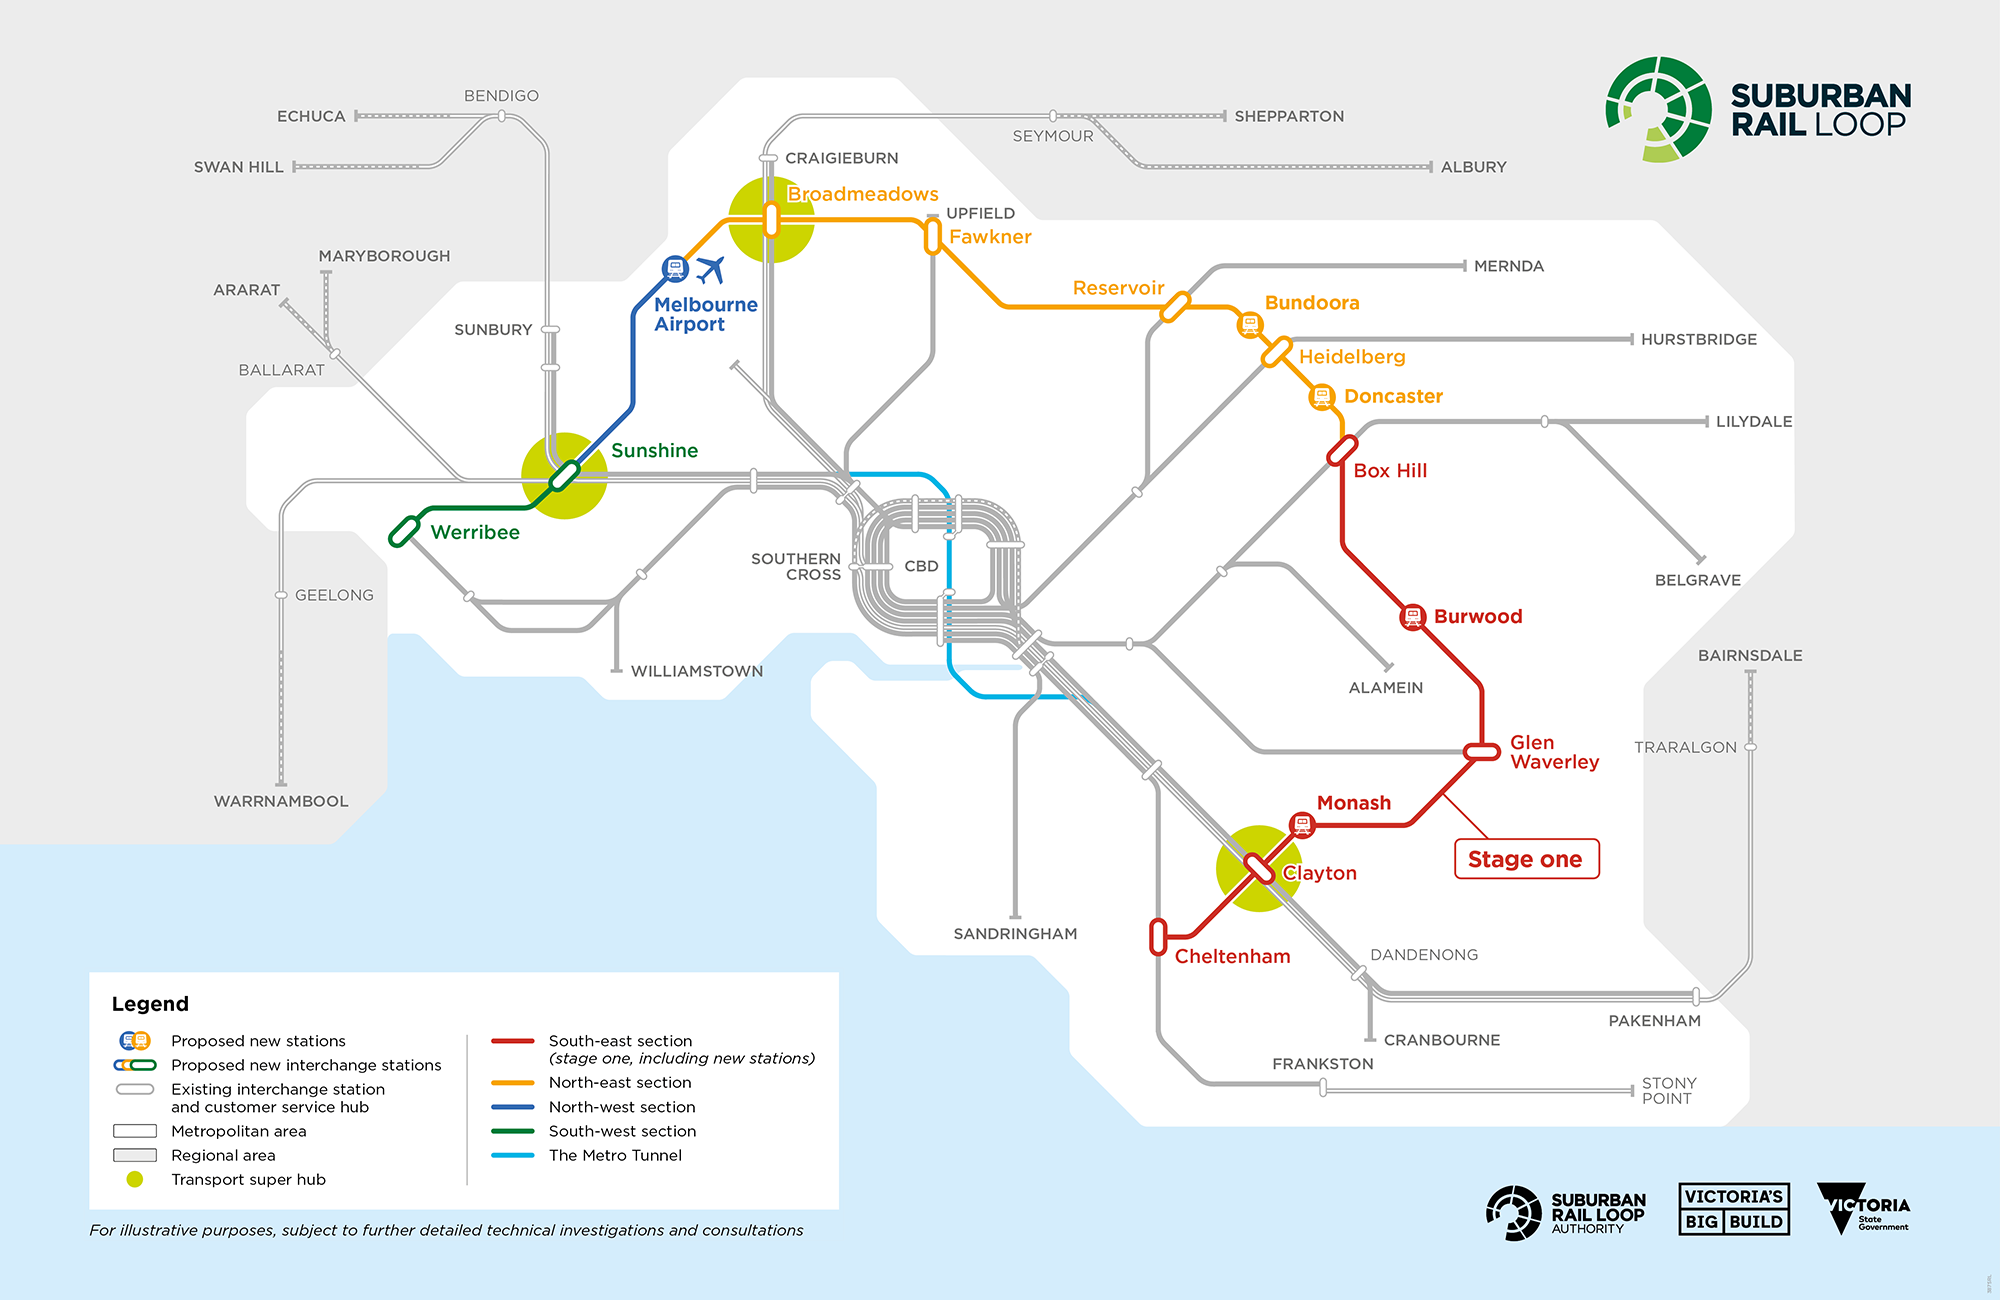 This is a map of Suburban Rail Loop, connecting every major train line from the Frankston line to the Werribee line, via the Melbourne Airport. This map shows the broad alignment for Stage One is from Cheltenham to Box Hill, including new stations and pre